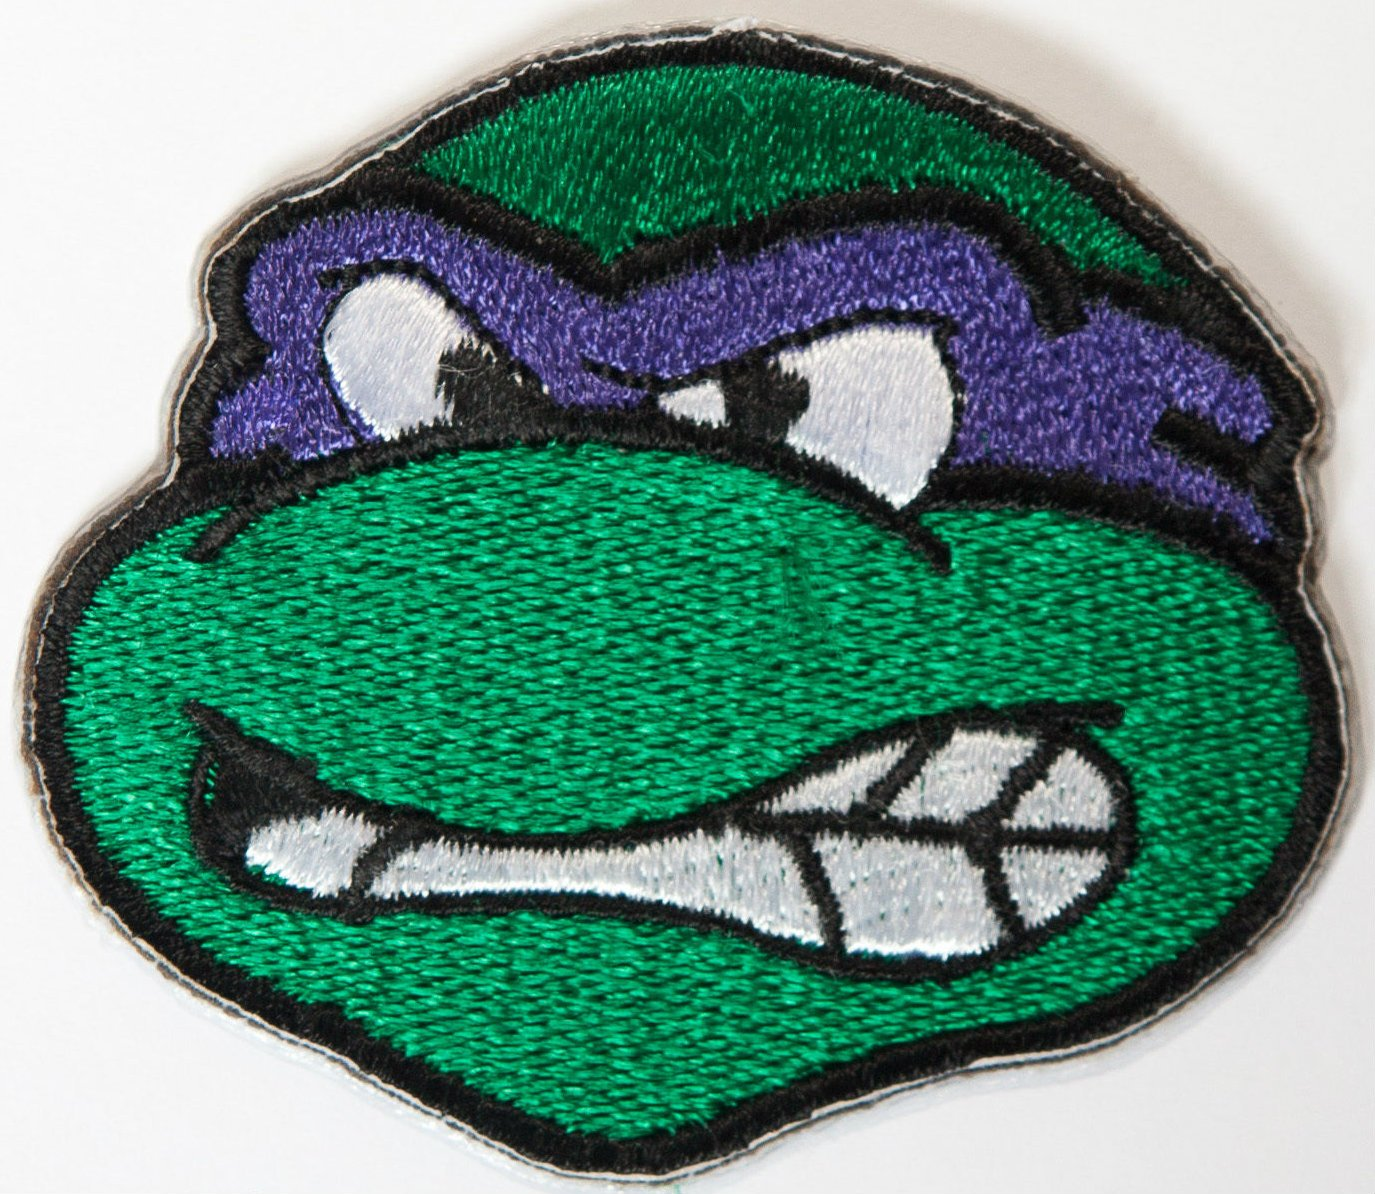 Amazon.com: Donatello de las Tortugas Ninja bordado hierro ...